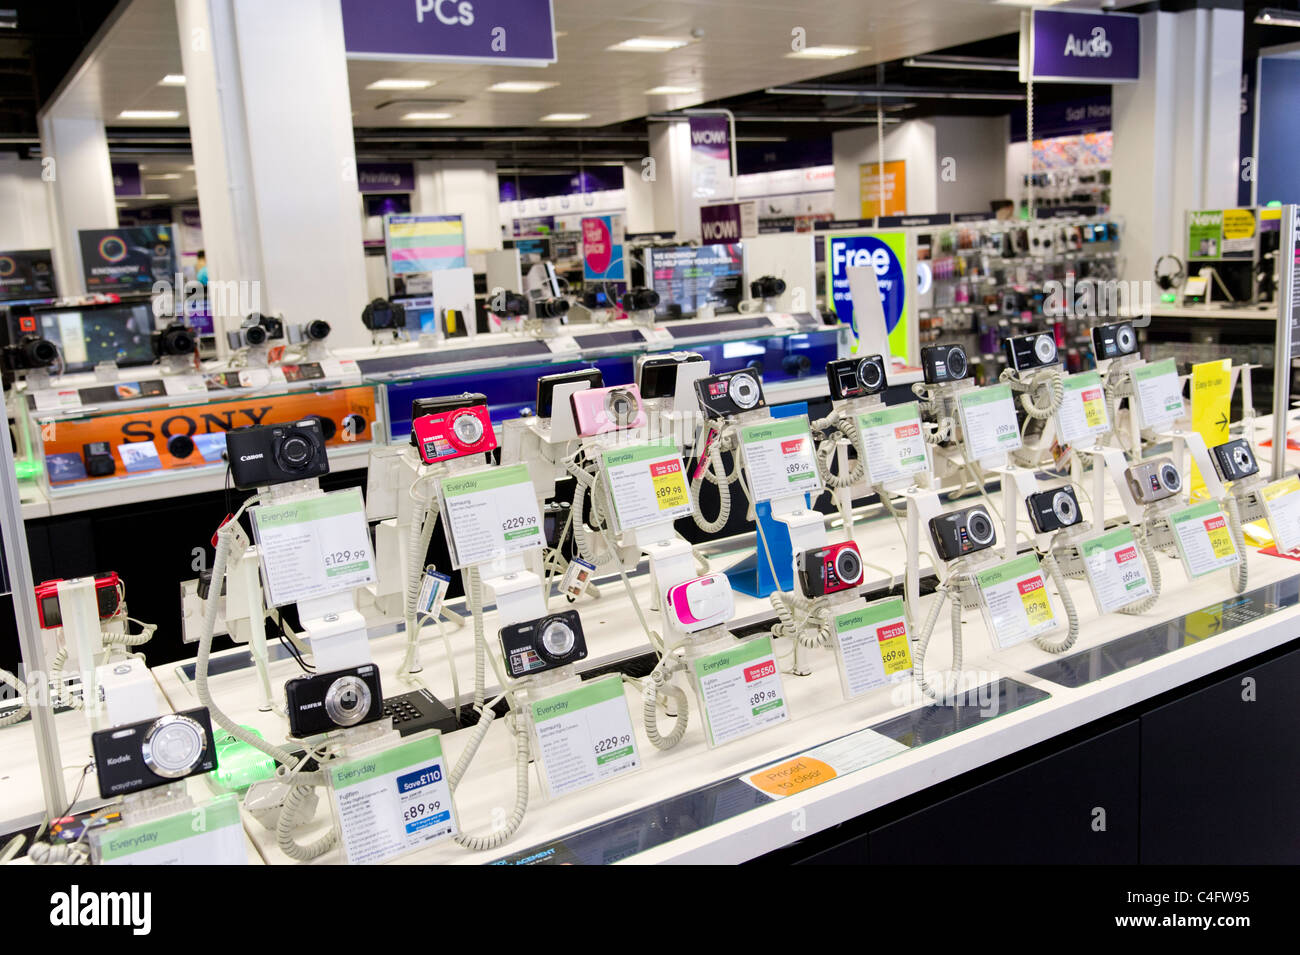 Compact digital cameras in PC World, London, UK - Stock Image